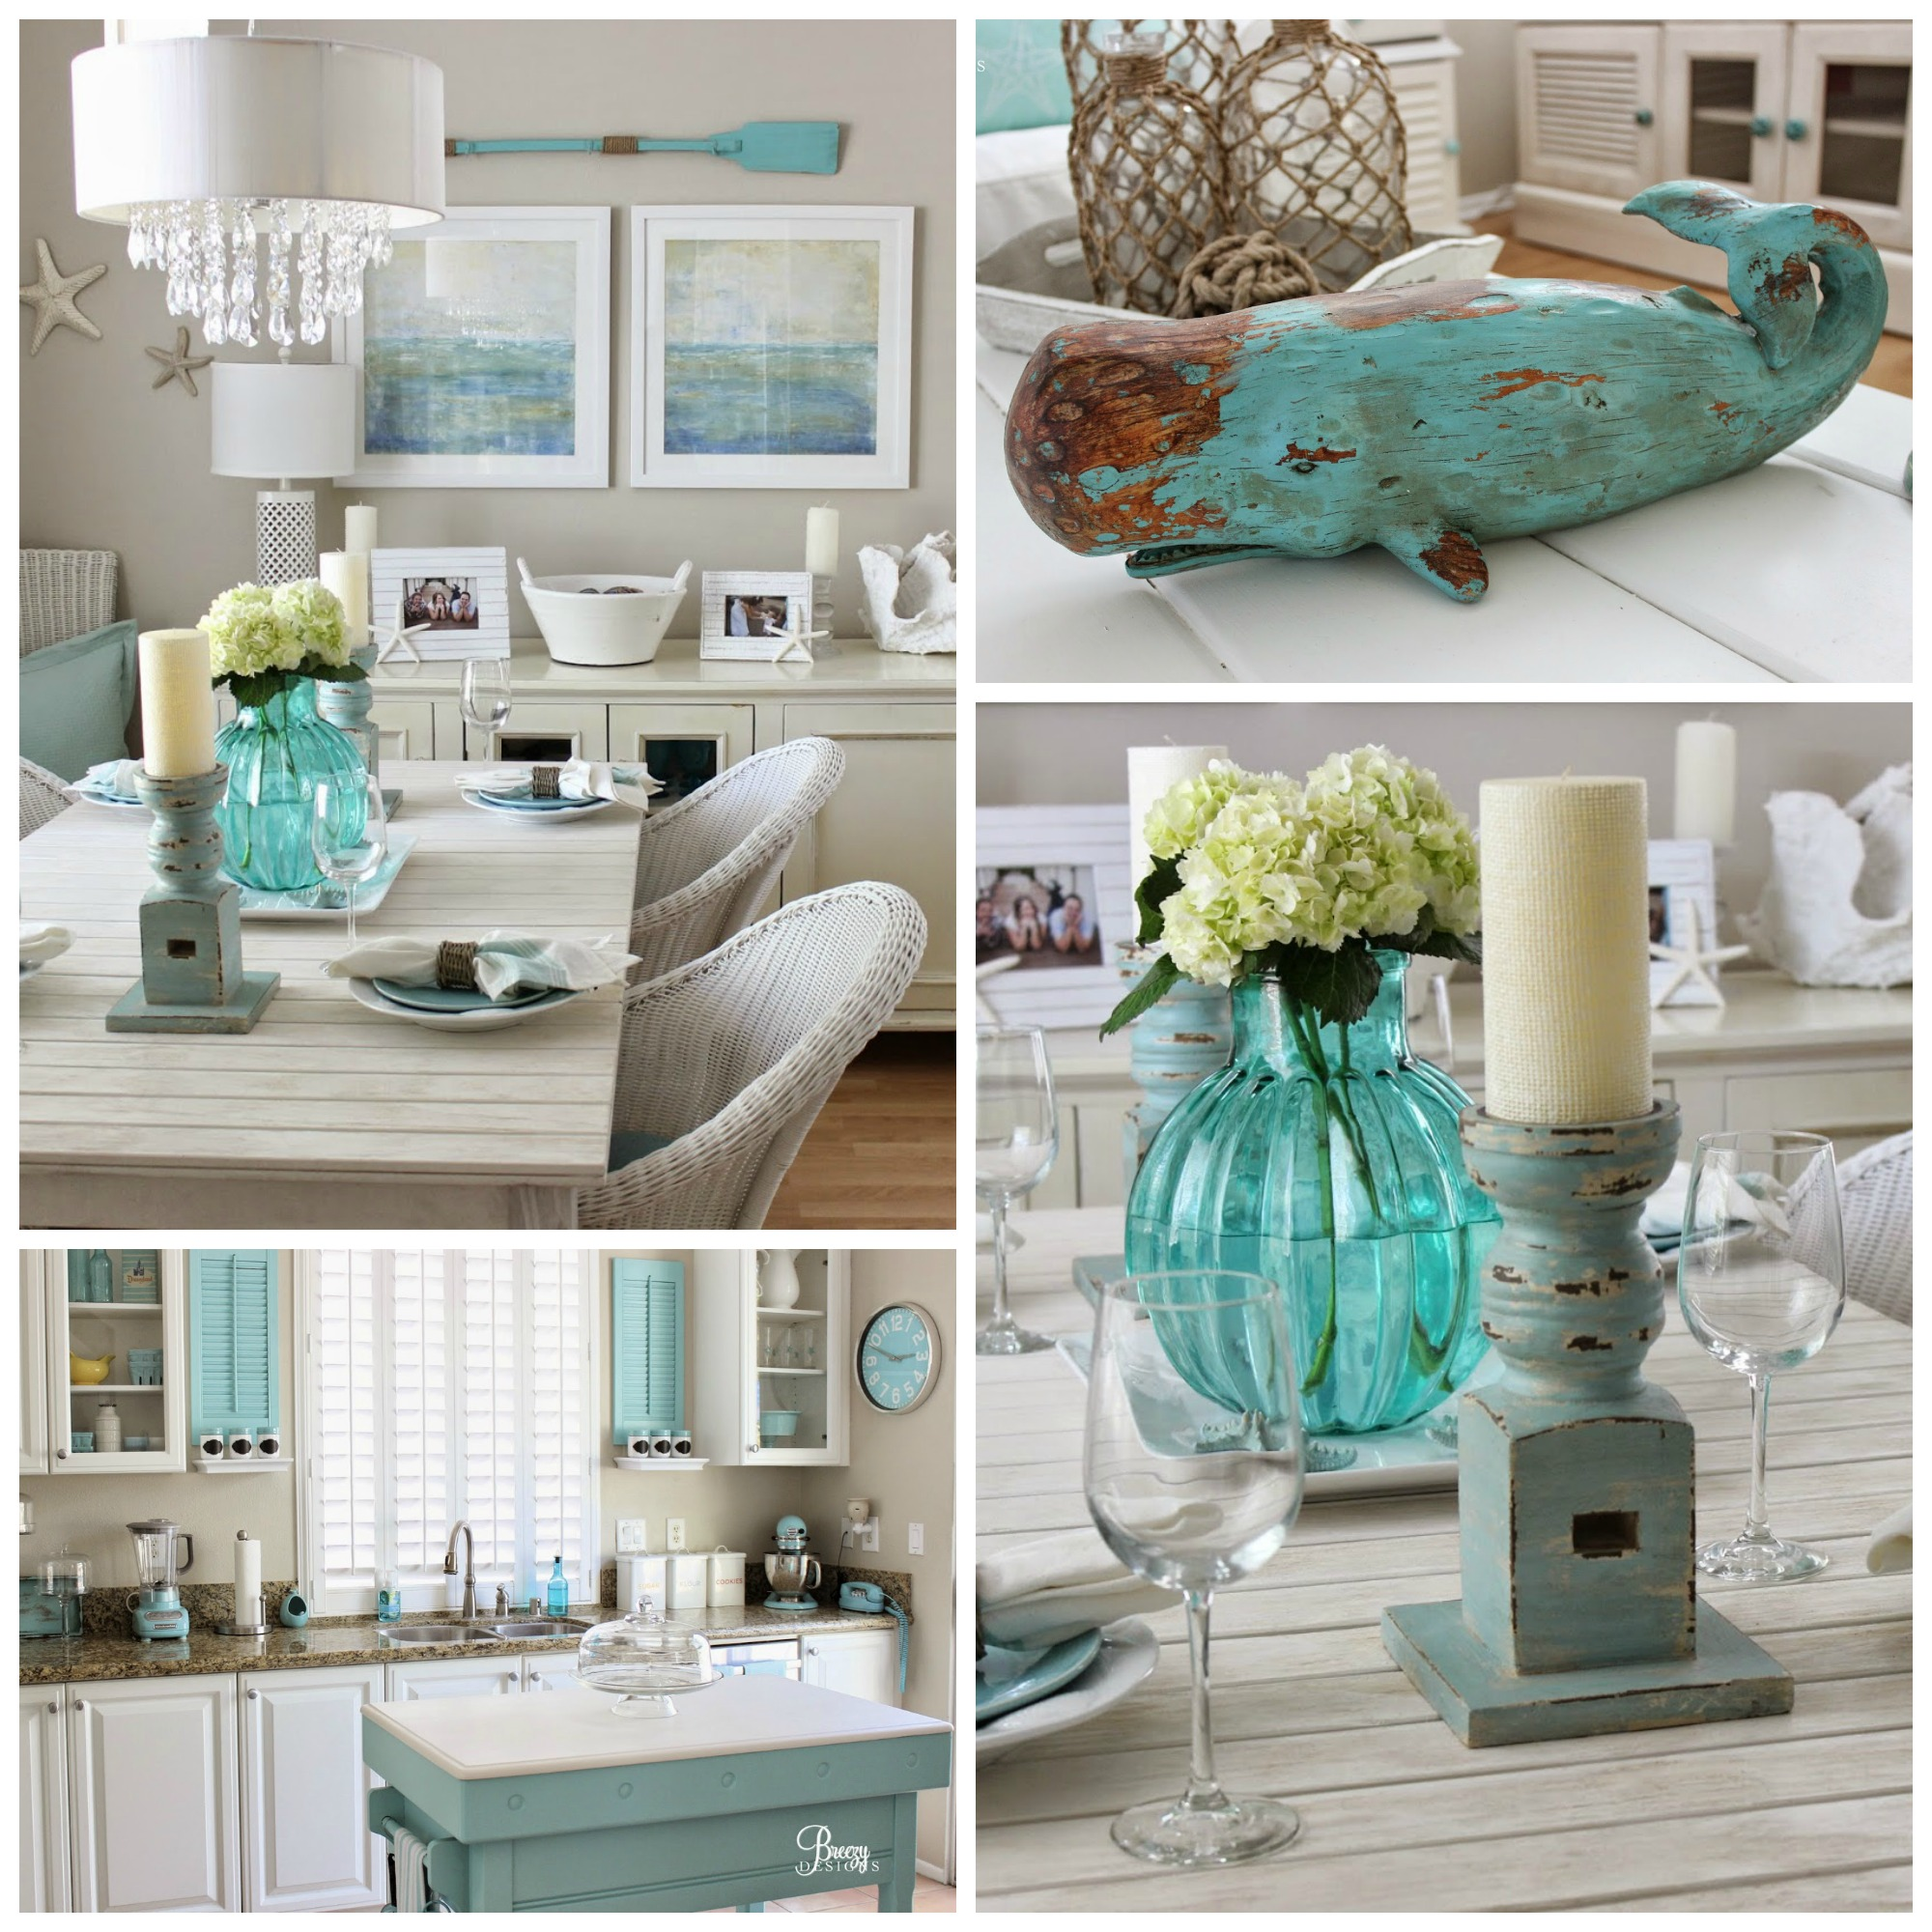 Beach Home Decor Ideas: Beach Chic Coastal Cottage Home Tour With Breezy Design